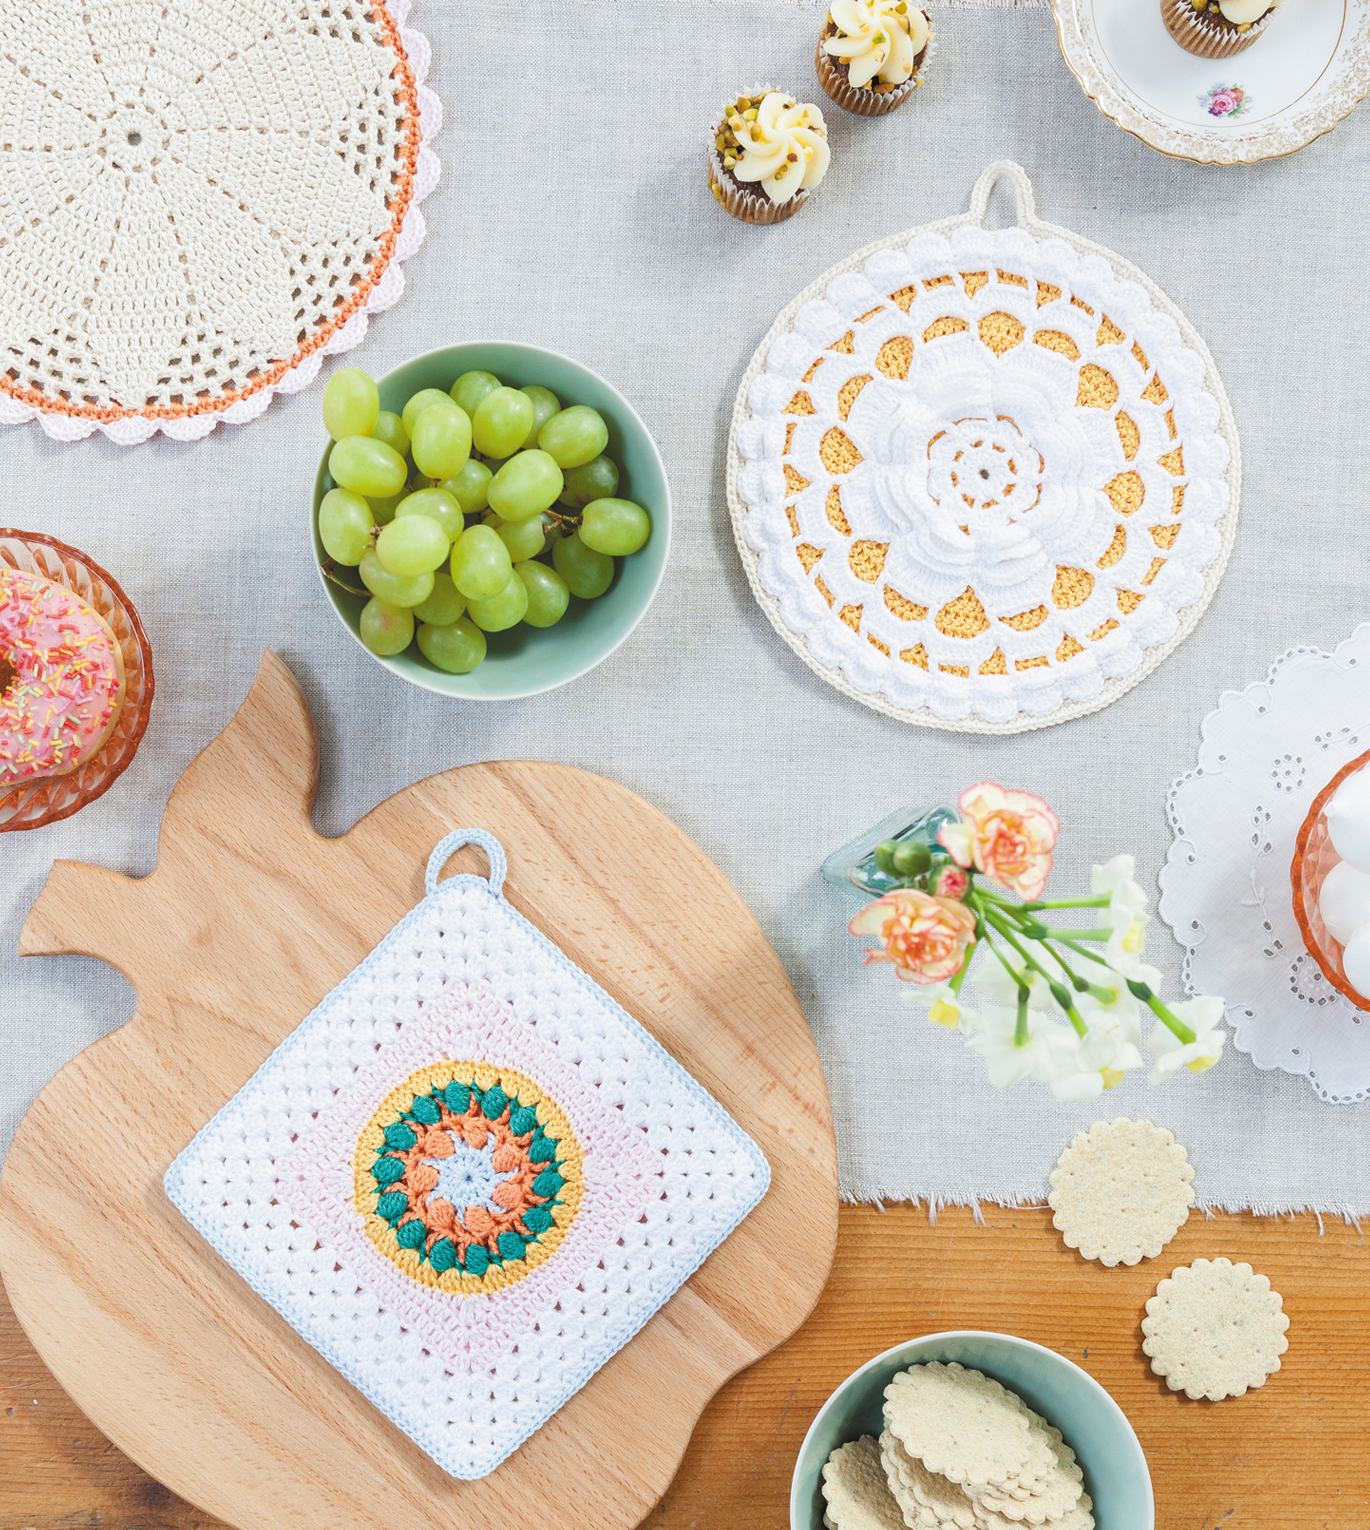 Potholder collection from Crochet Home by Emma Lamb | Crochet designs and styling by Emma Lamb / Photography by Jason M Jenkins